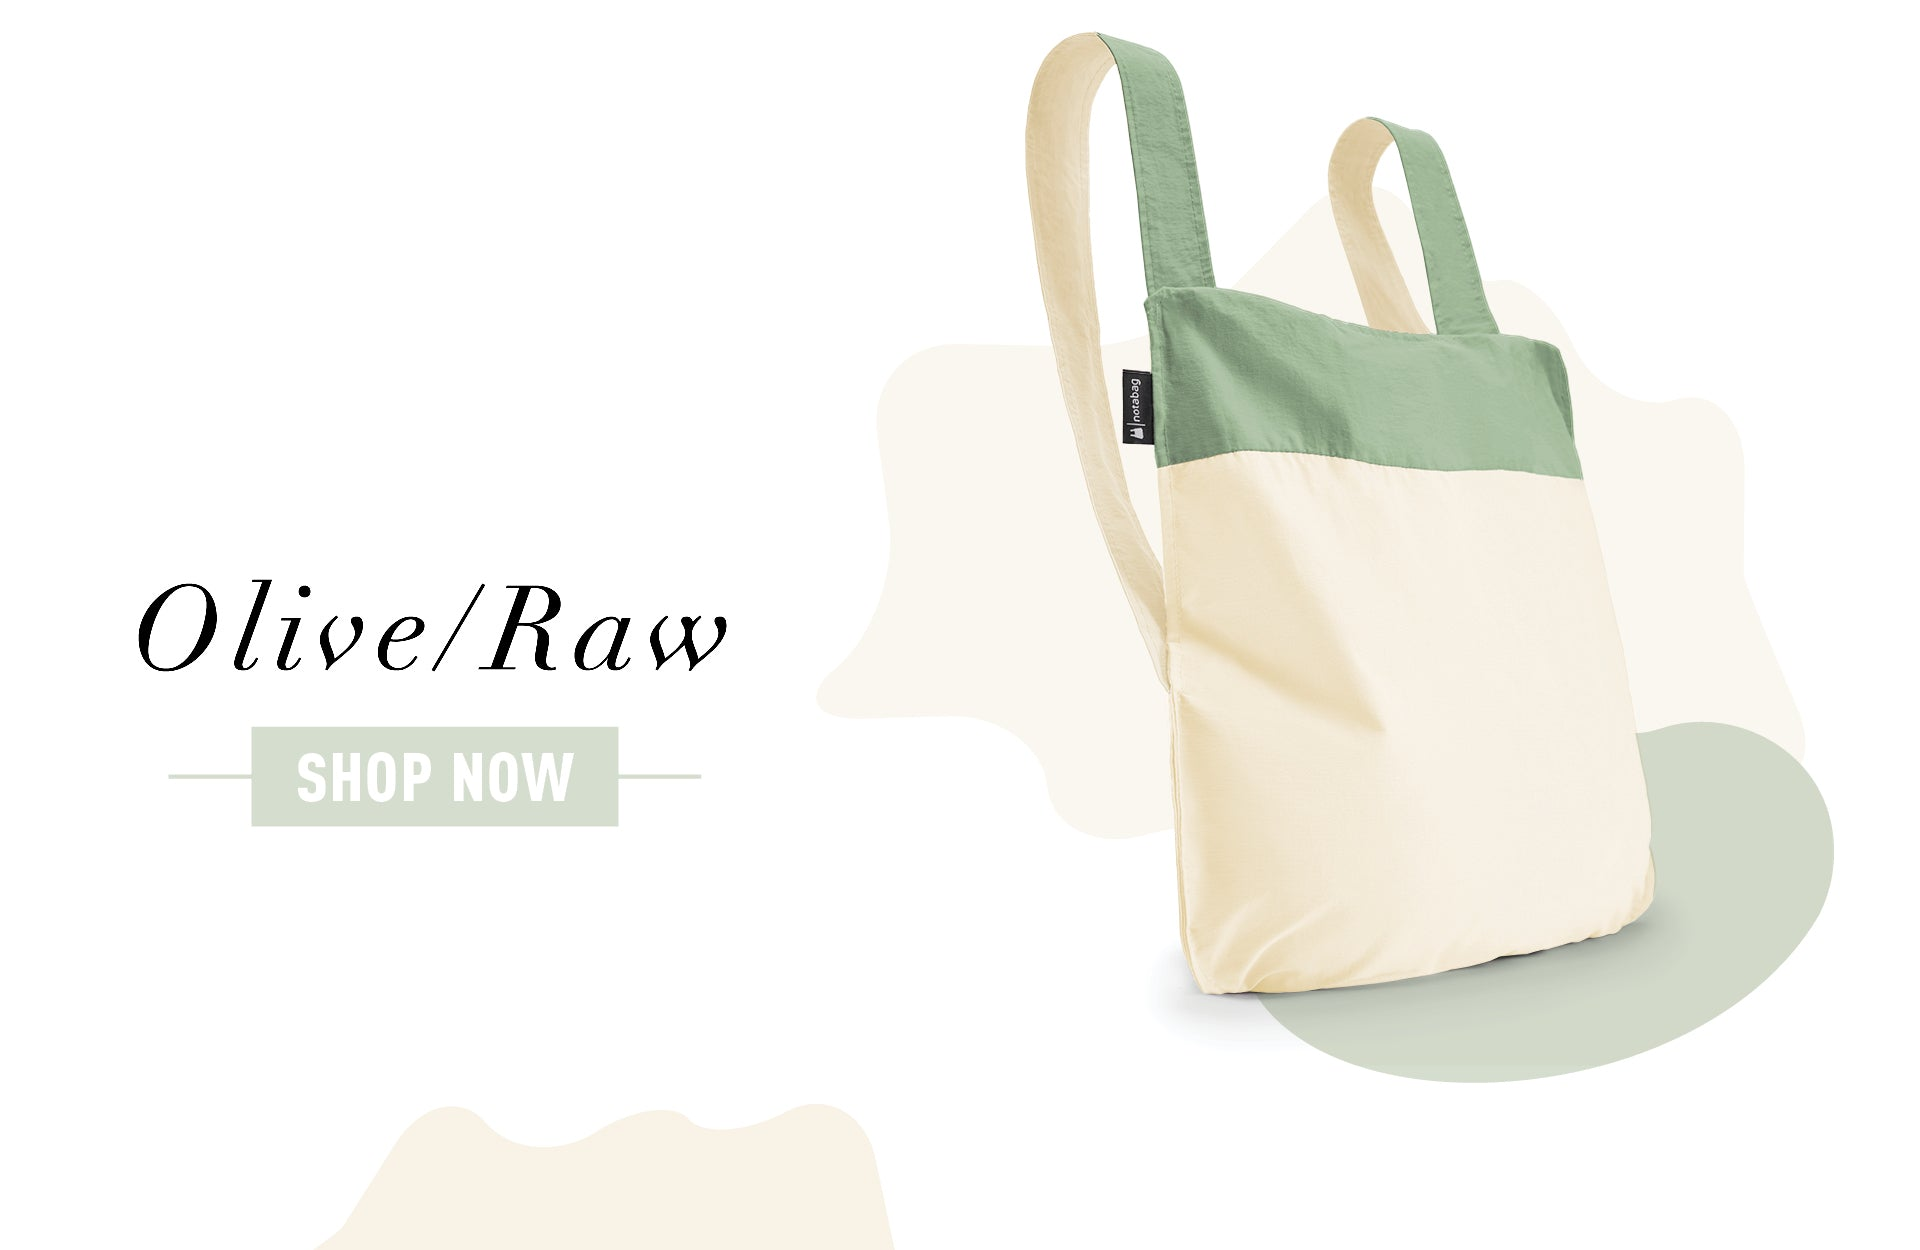 Notabag Olive/Raw – Shop Now